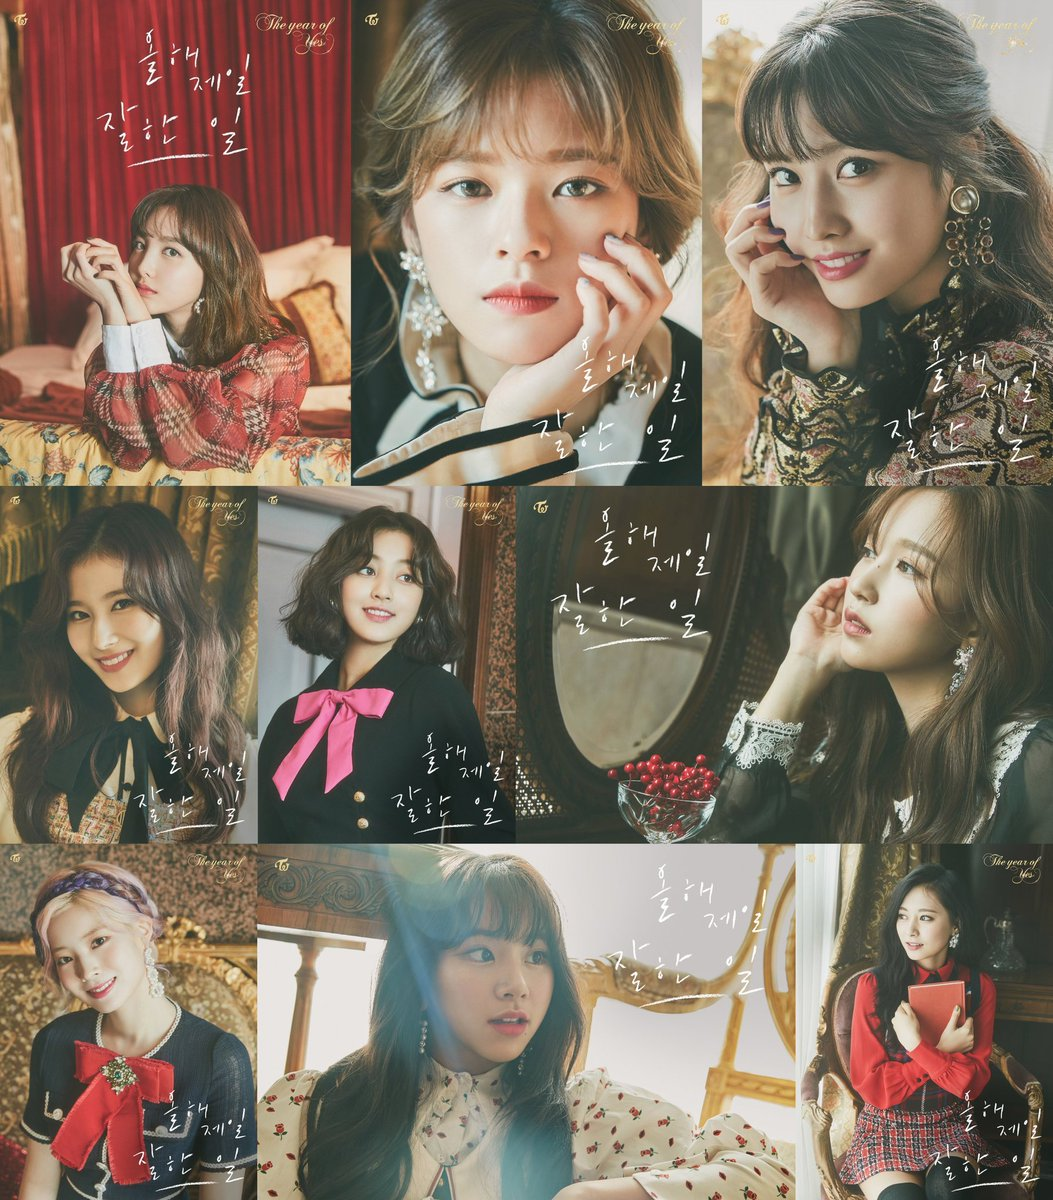 All 9 members [12AM] teaser photo for #TheBestThingIEverDid #TWICE #트와이스